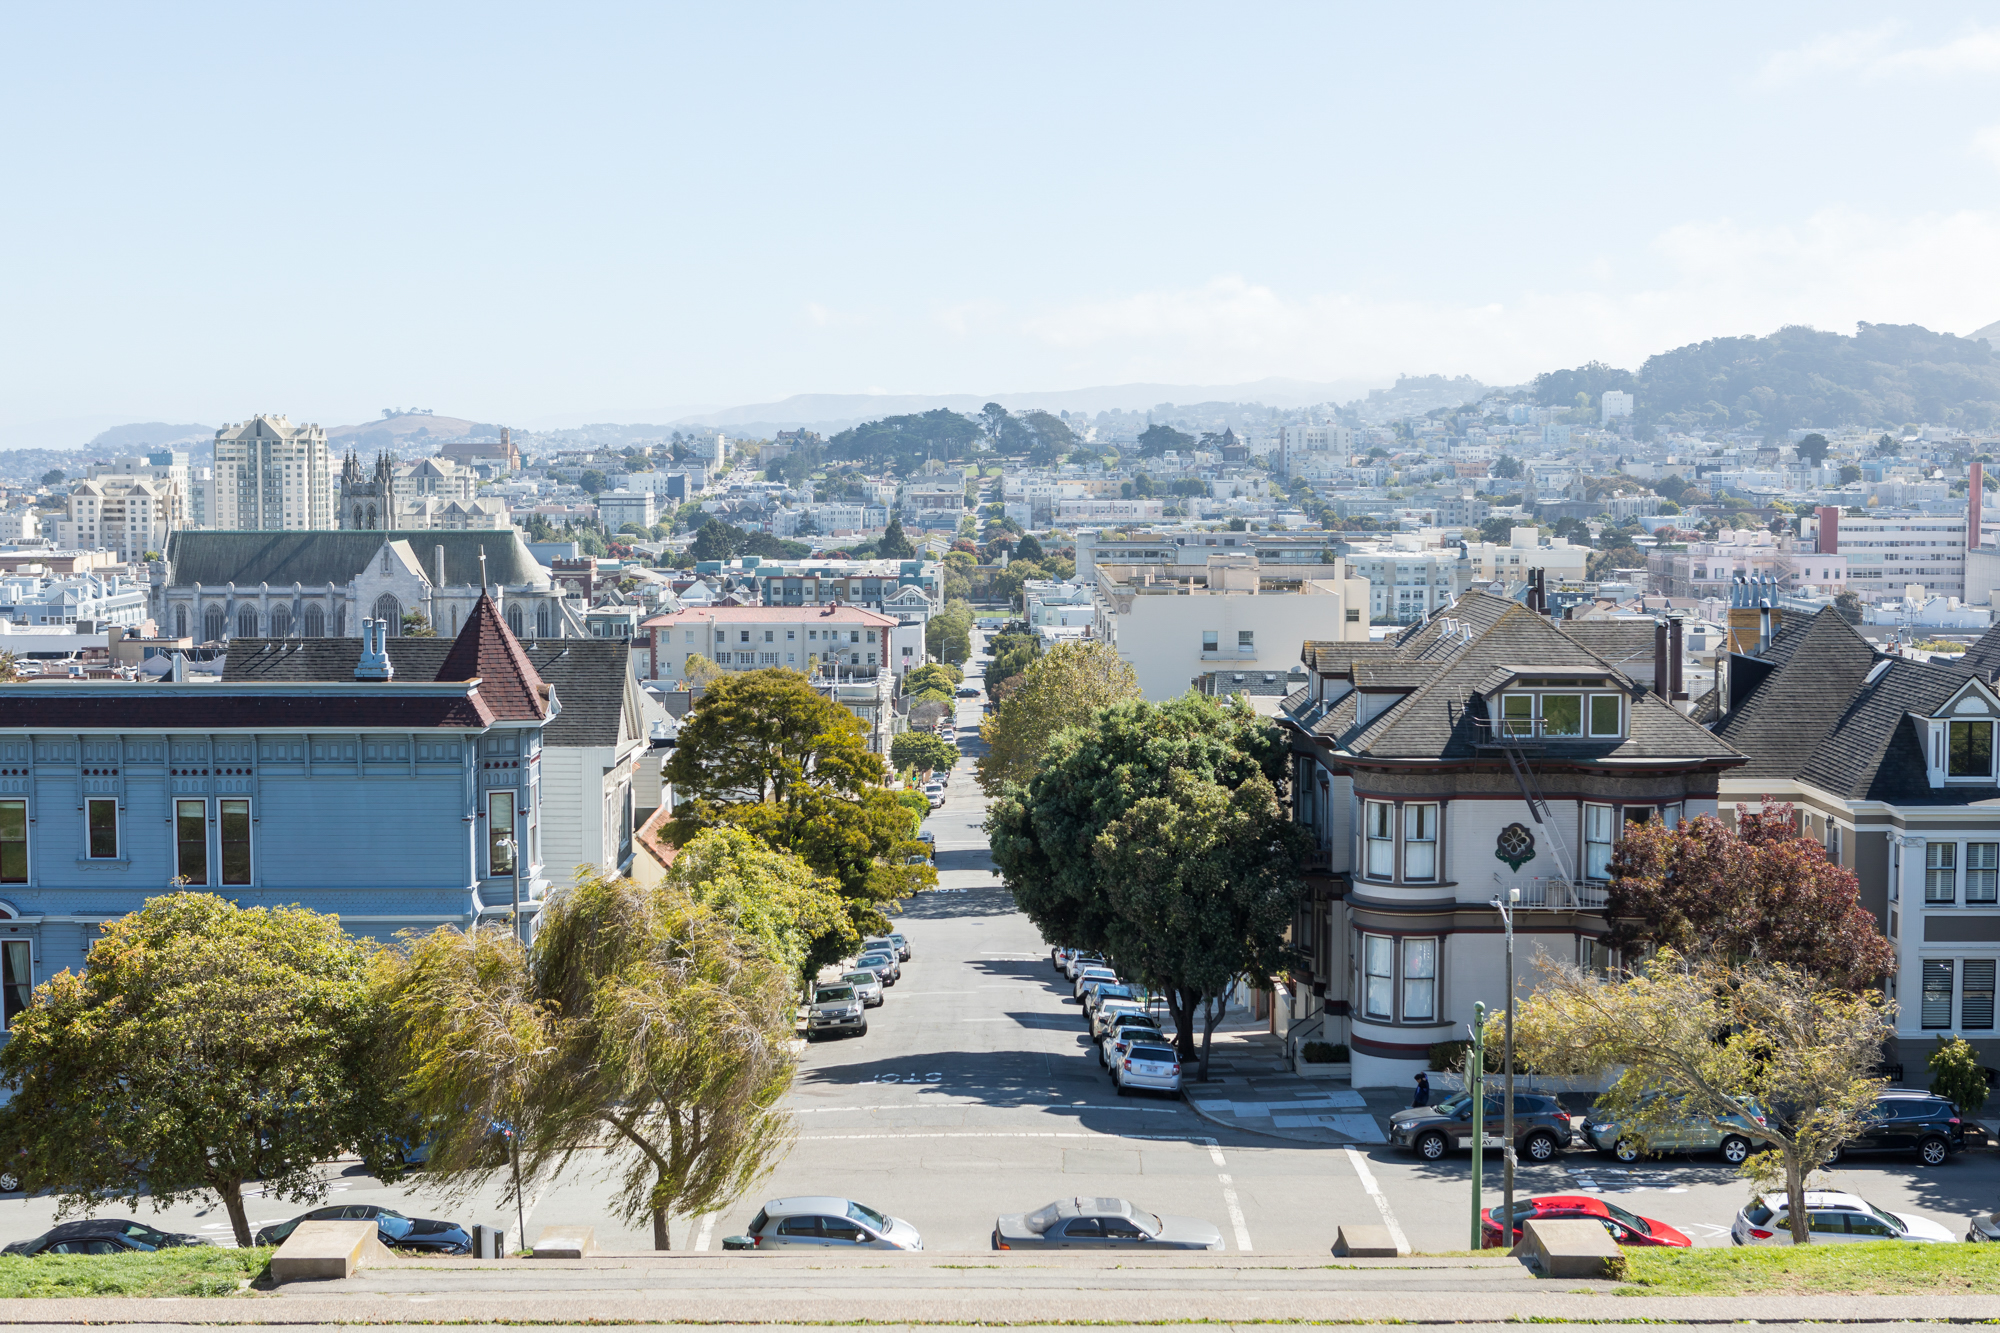 An aerial view of a street and city buildings in San Francisco. The street is lined with trees. In the distance are hills and mountains.